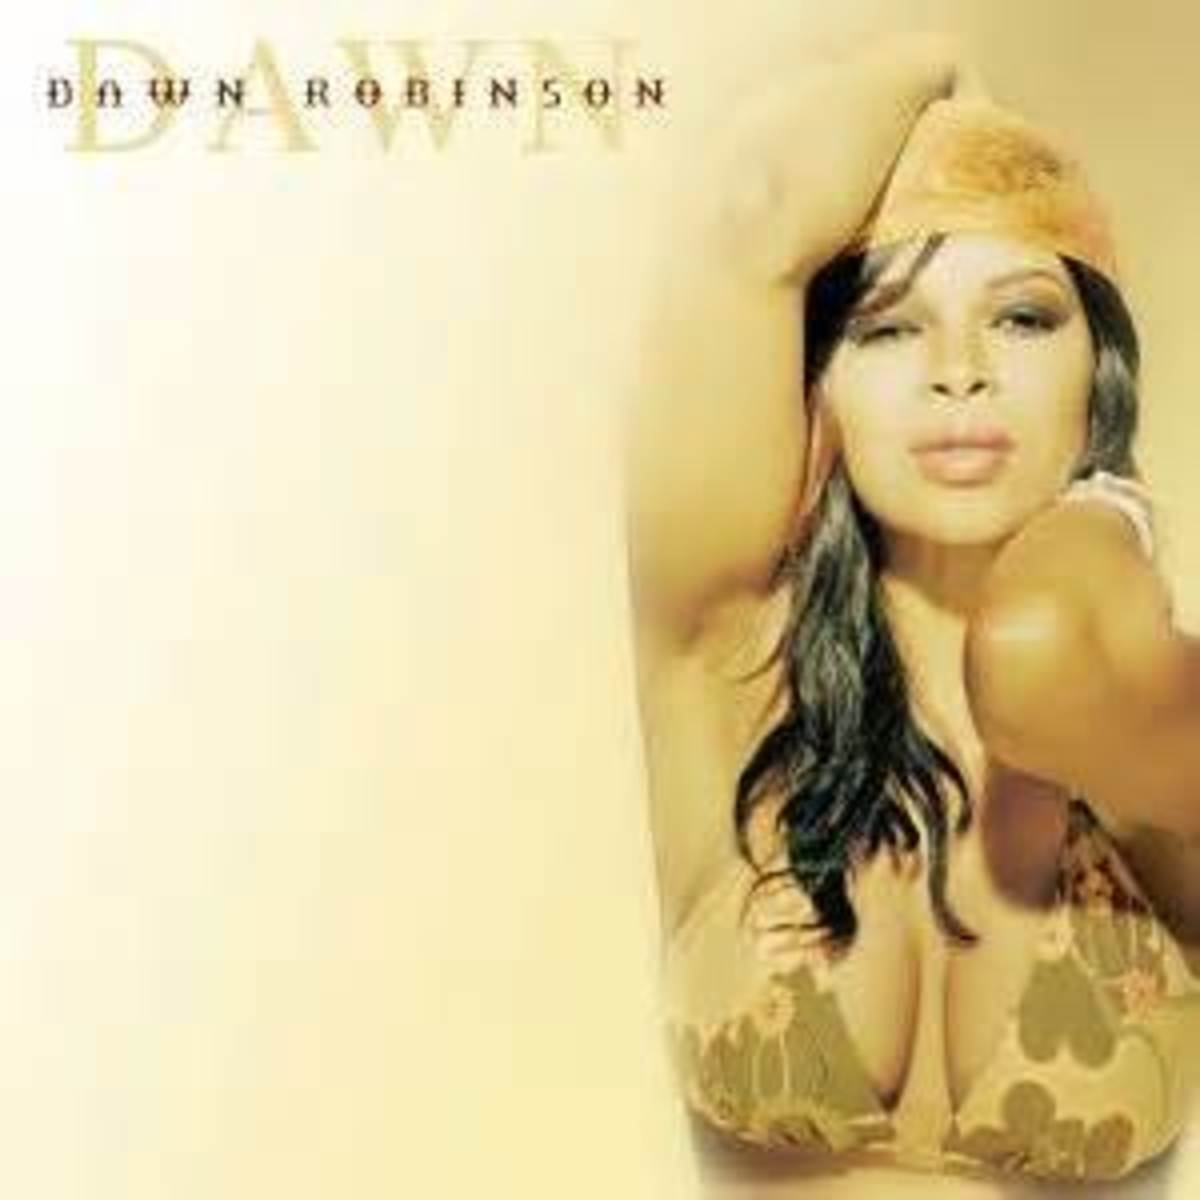 Timing can be your worst enemy in show business.  Dawn's solo album came out 6 years after Don't Let Go (Love) and by then she had cooled off.